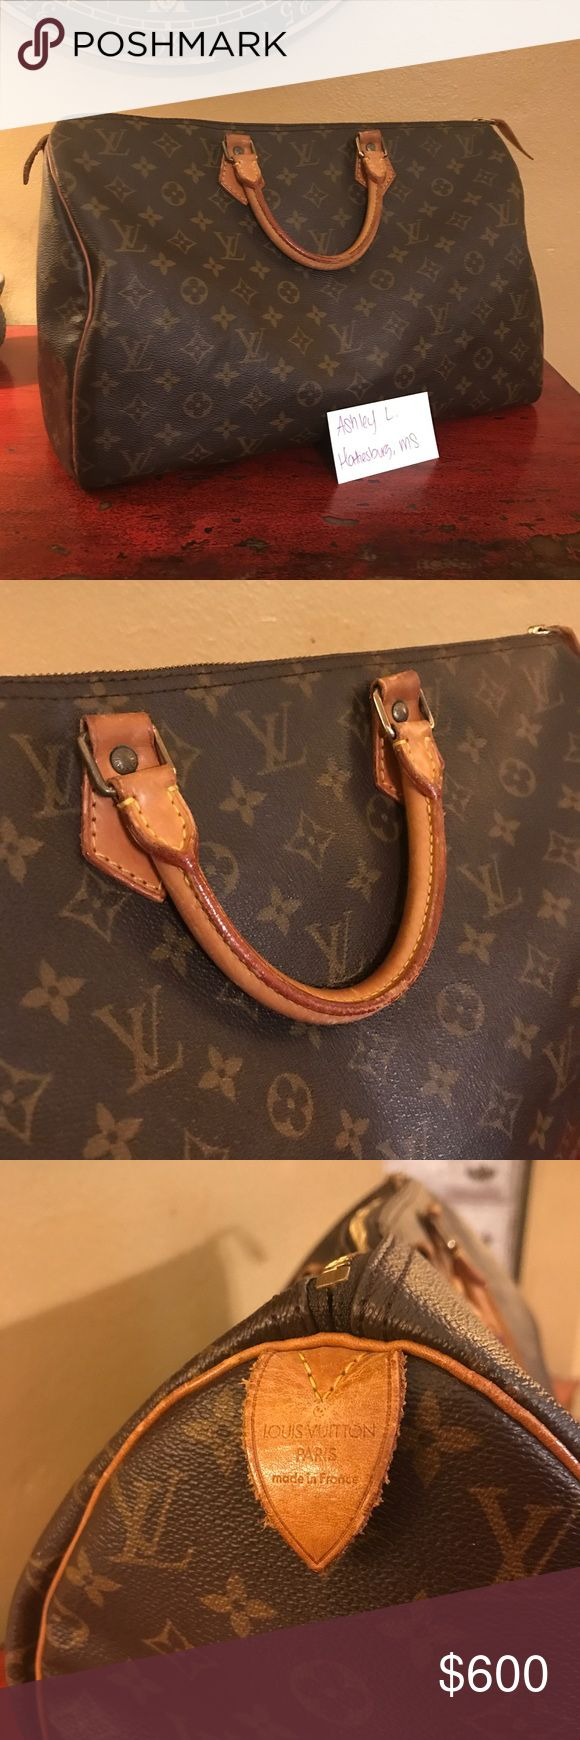 Authentic Louis Vuitton Speedy 40 EXCELLENT USED CONDITION          Speedy 40- $500 Dustbag Included!    Handles are a light patina. The corners in excellent condition with normal wear, leather pull tab attached. Interior is clean - see photos. Zipper works great without any problems. No peeling or odors! Louis Vuitton Bags Totes